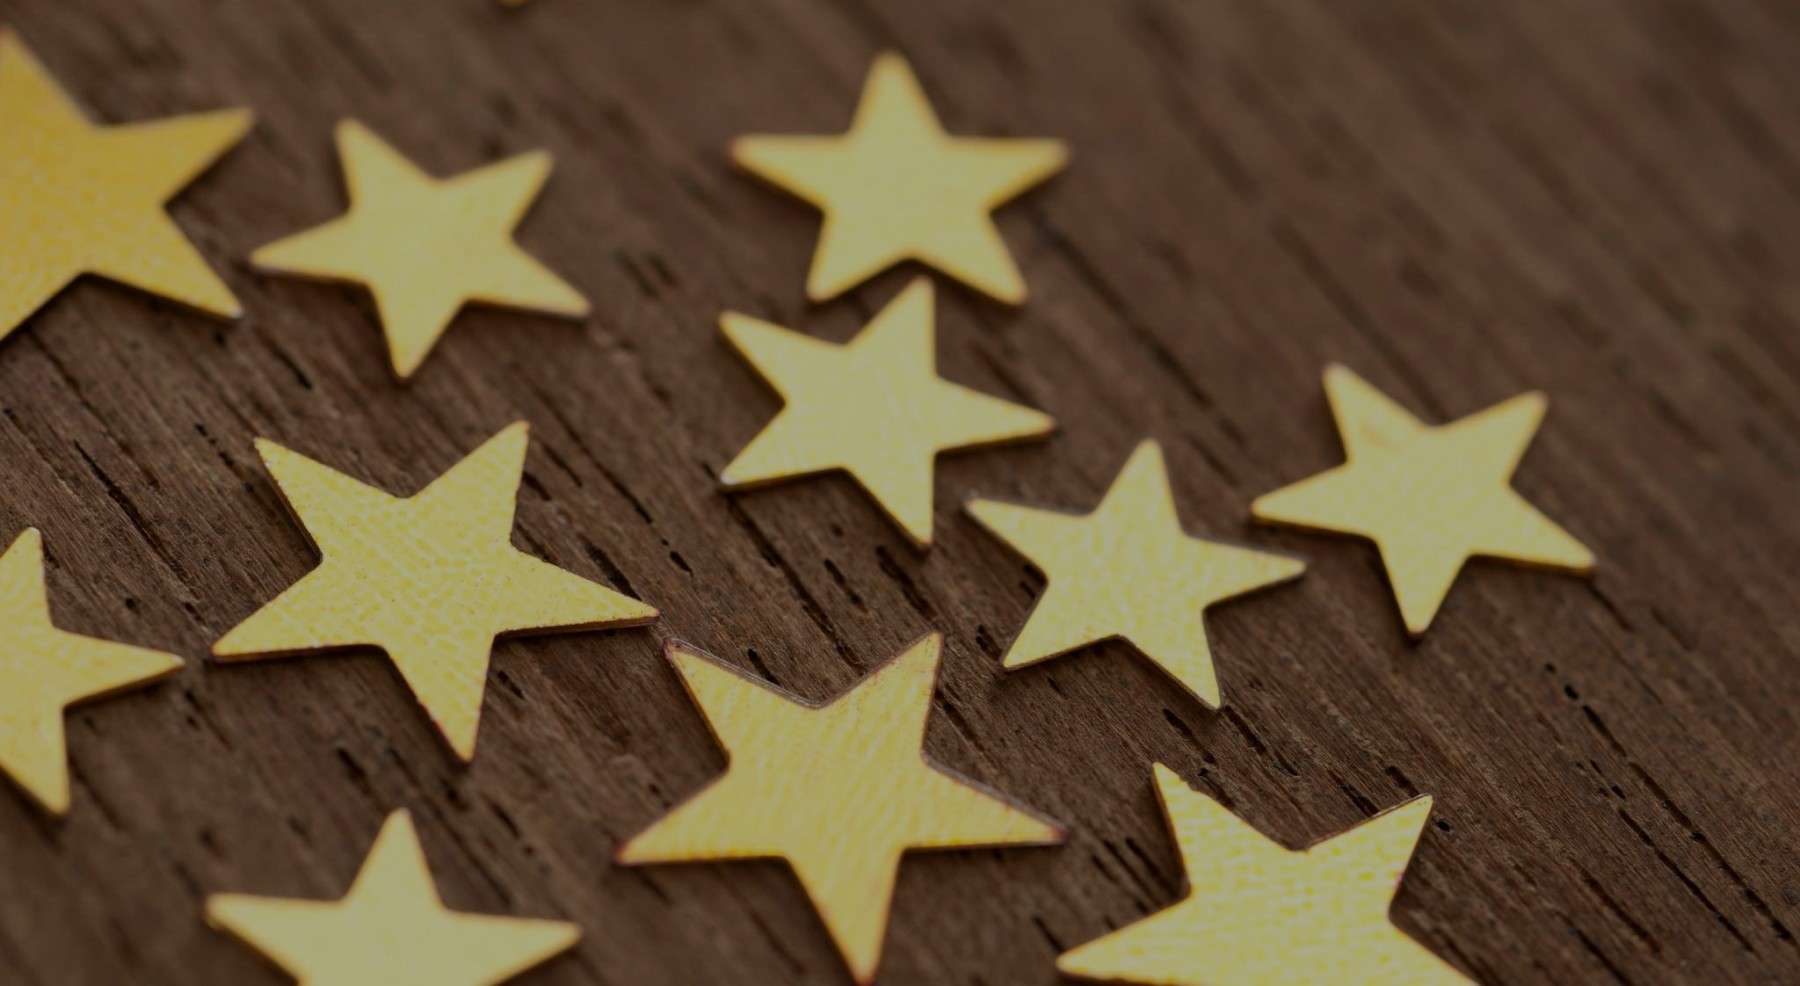 Gold stars on wooden surface